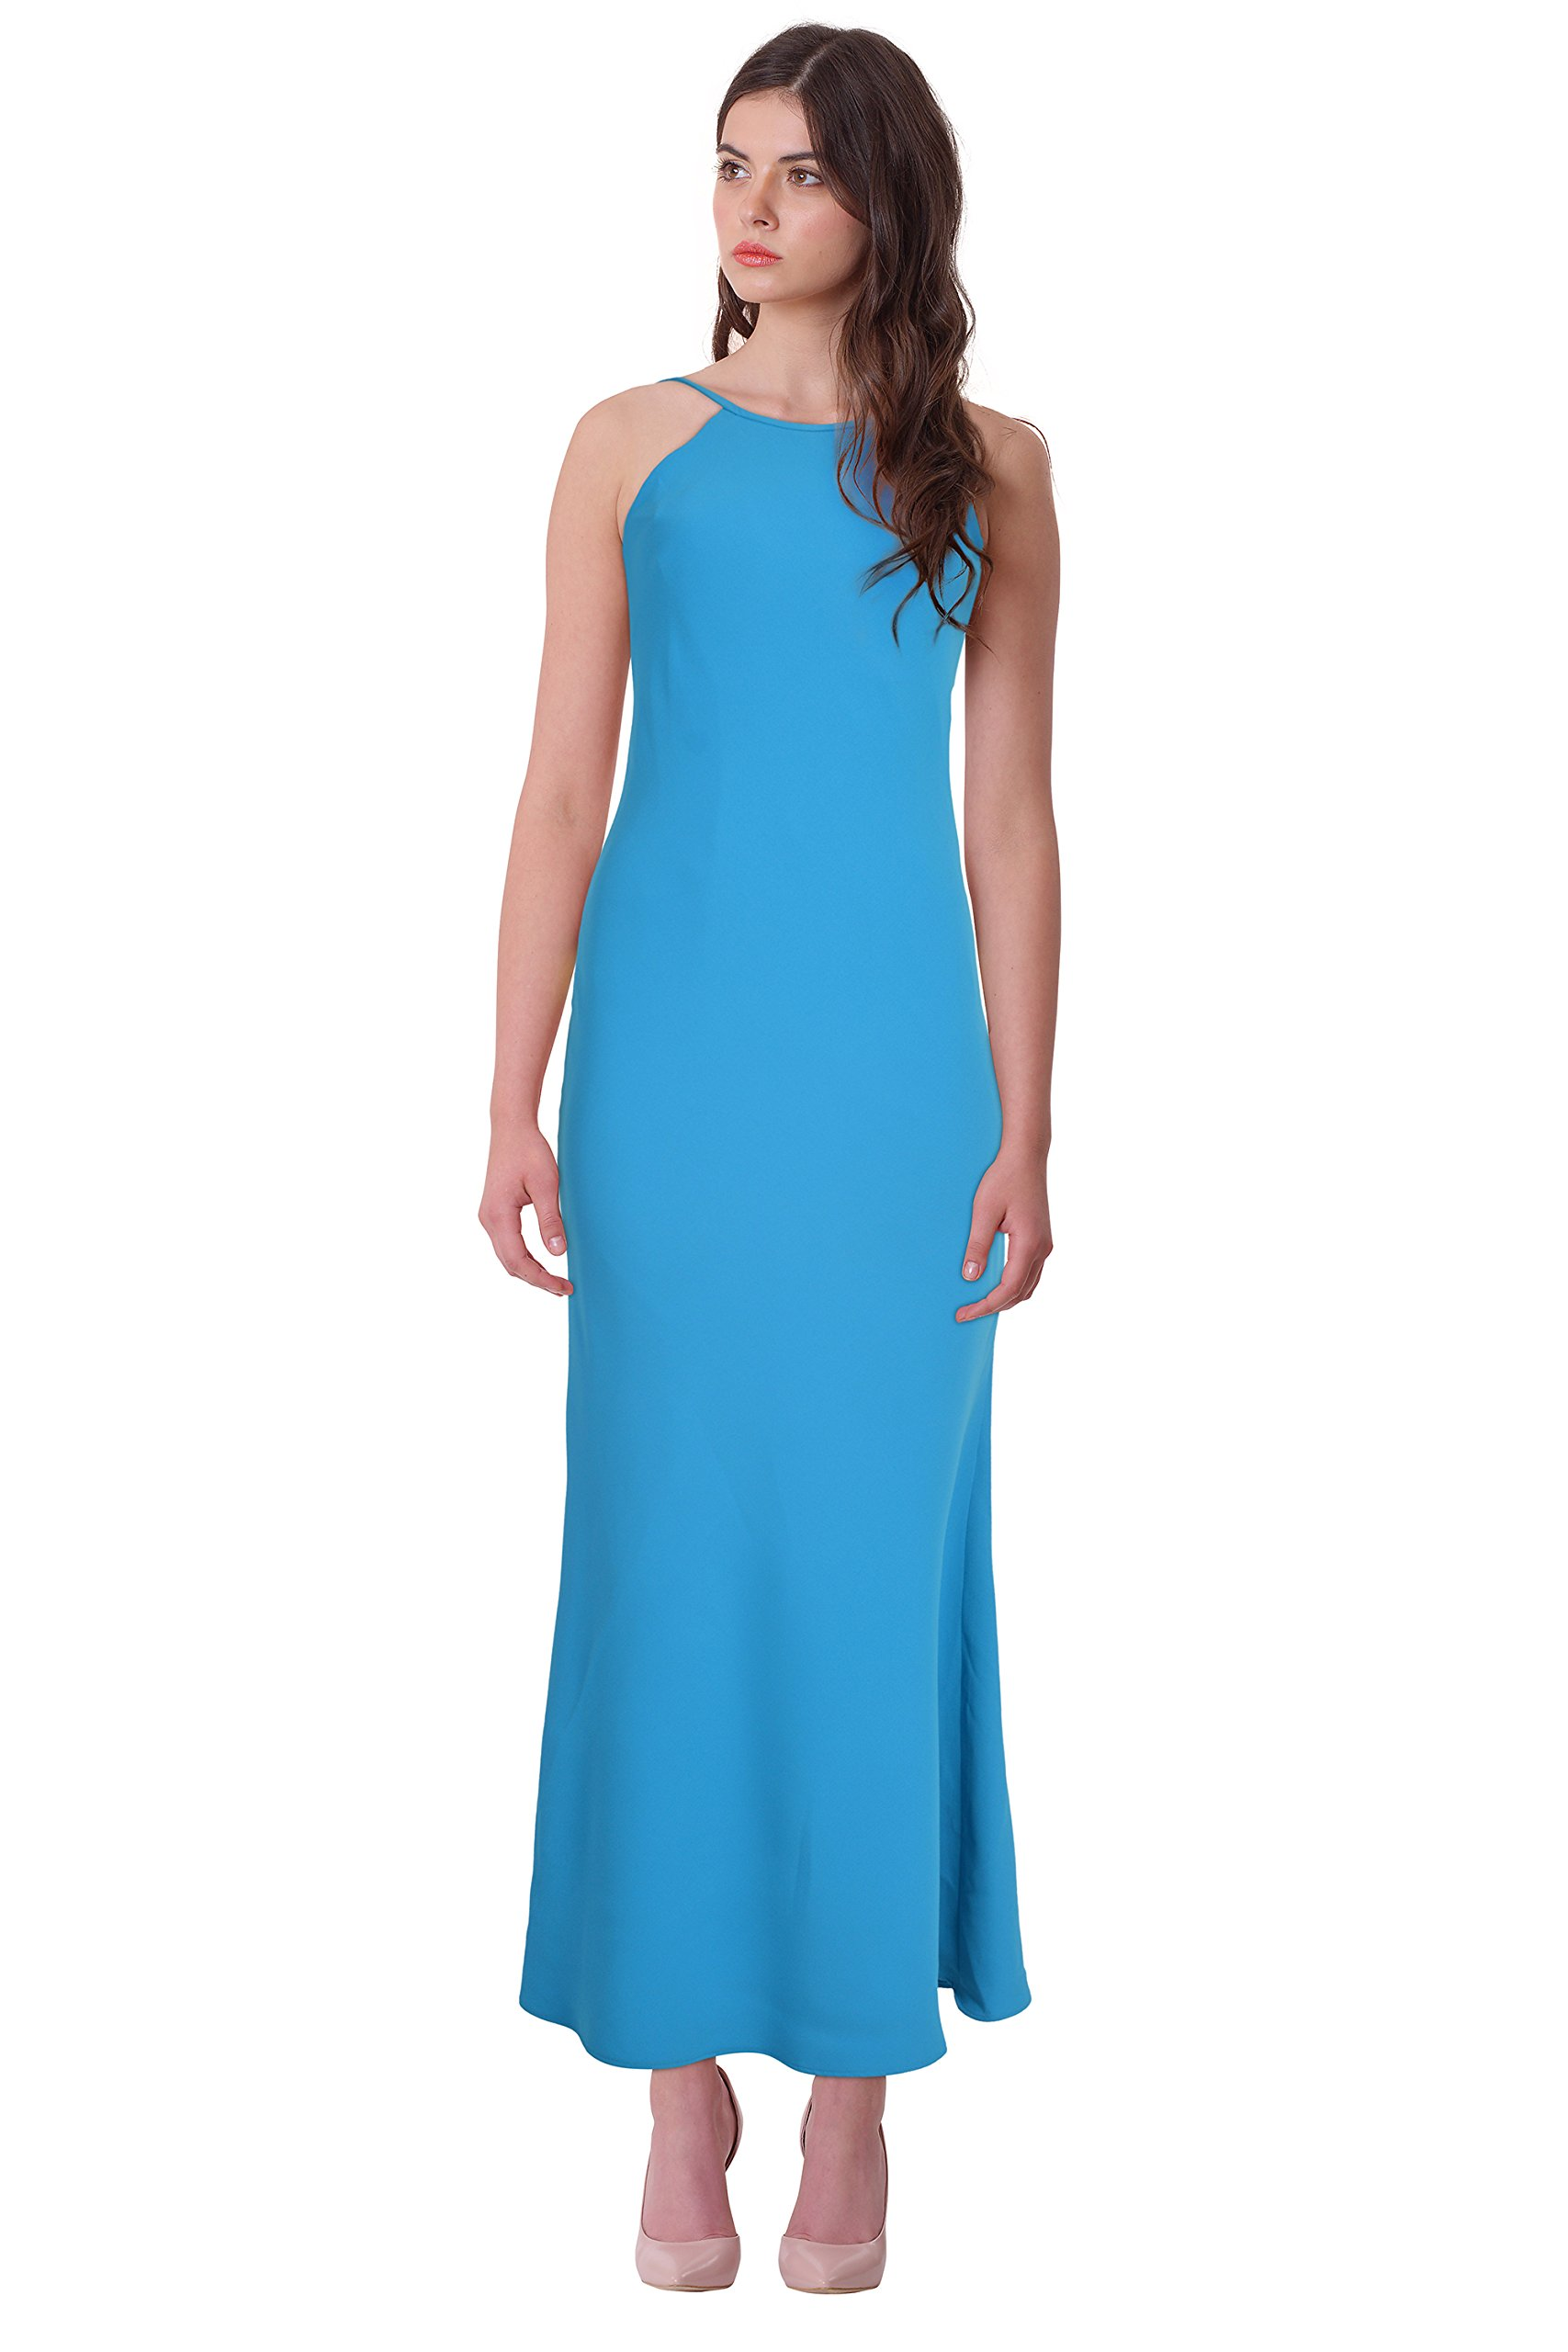 Available at Amazon: Calvin Klein Crepe Open Back Halter Evening Gown Dress